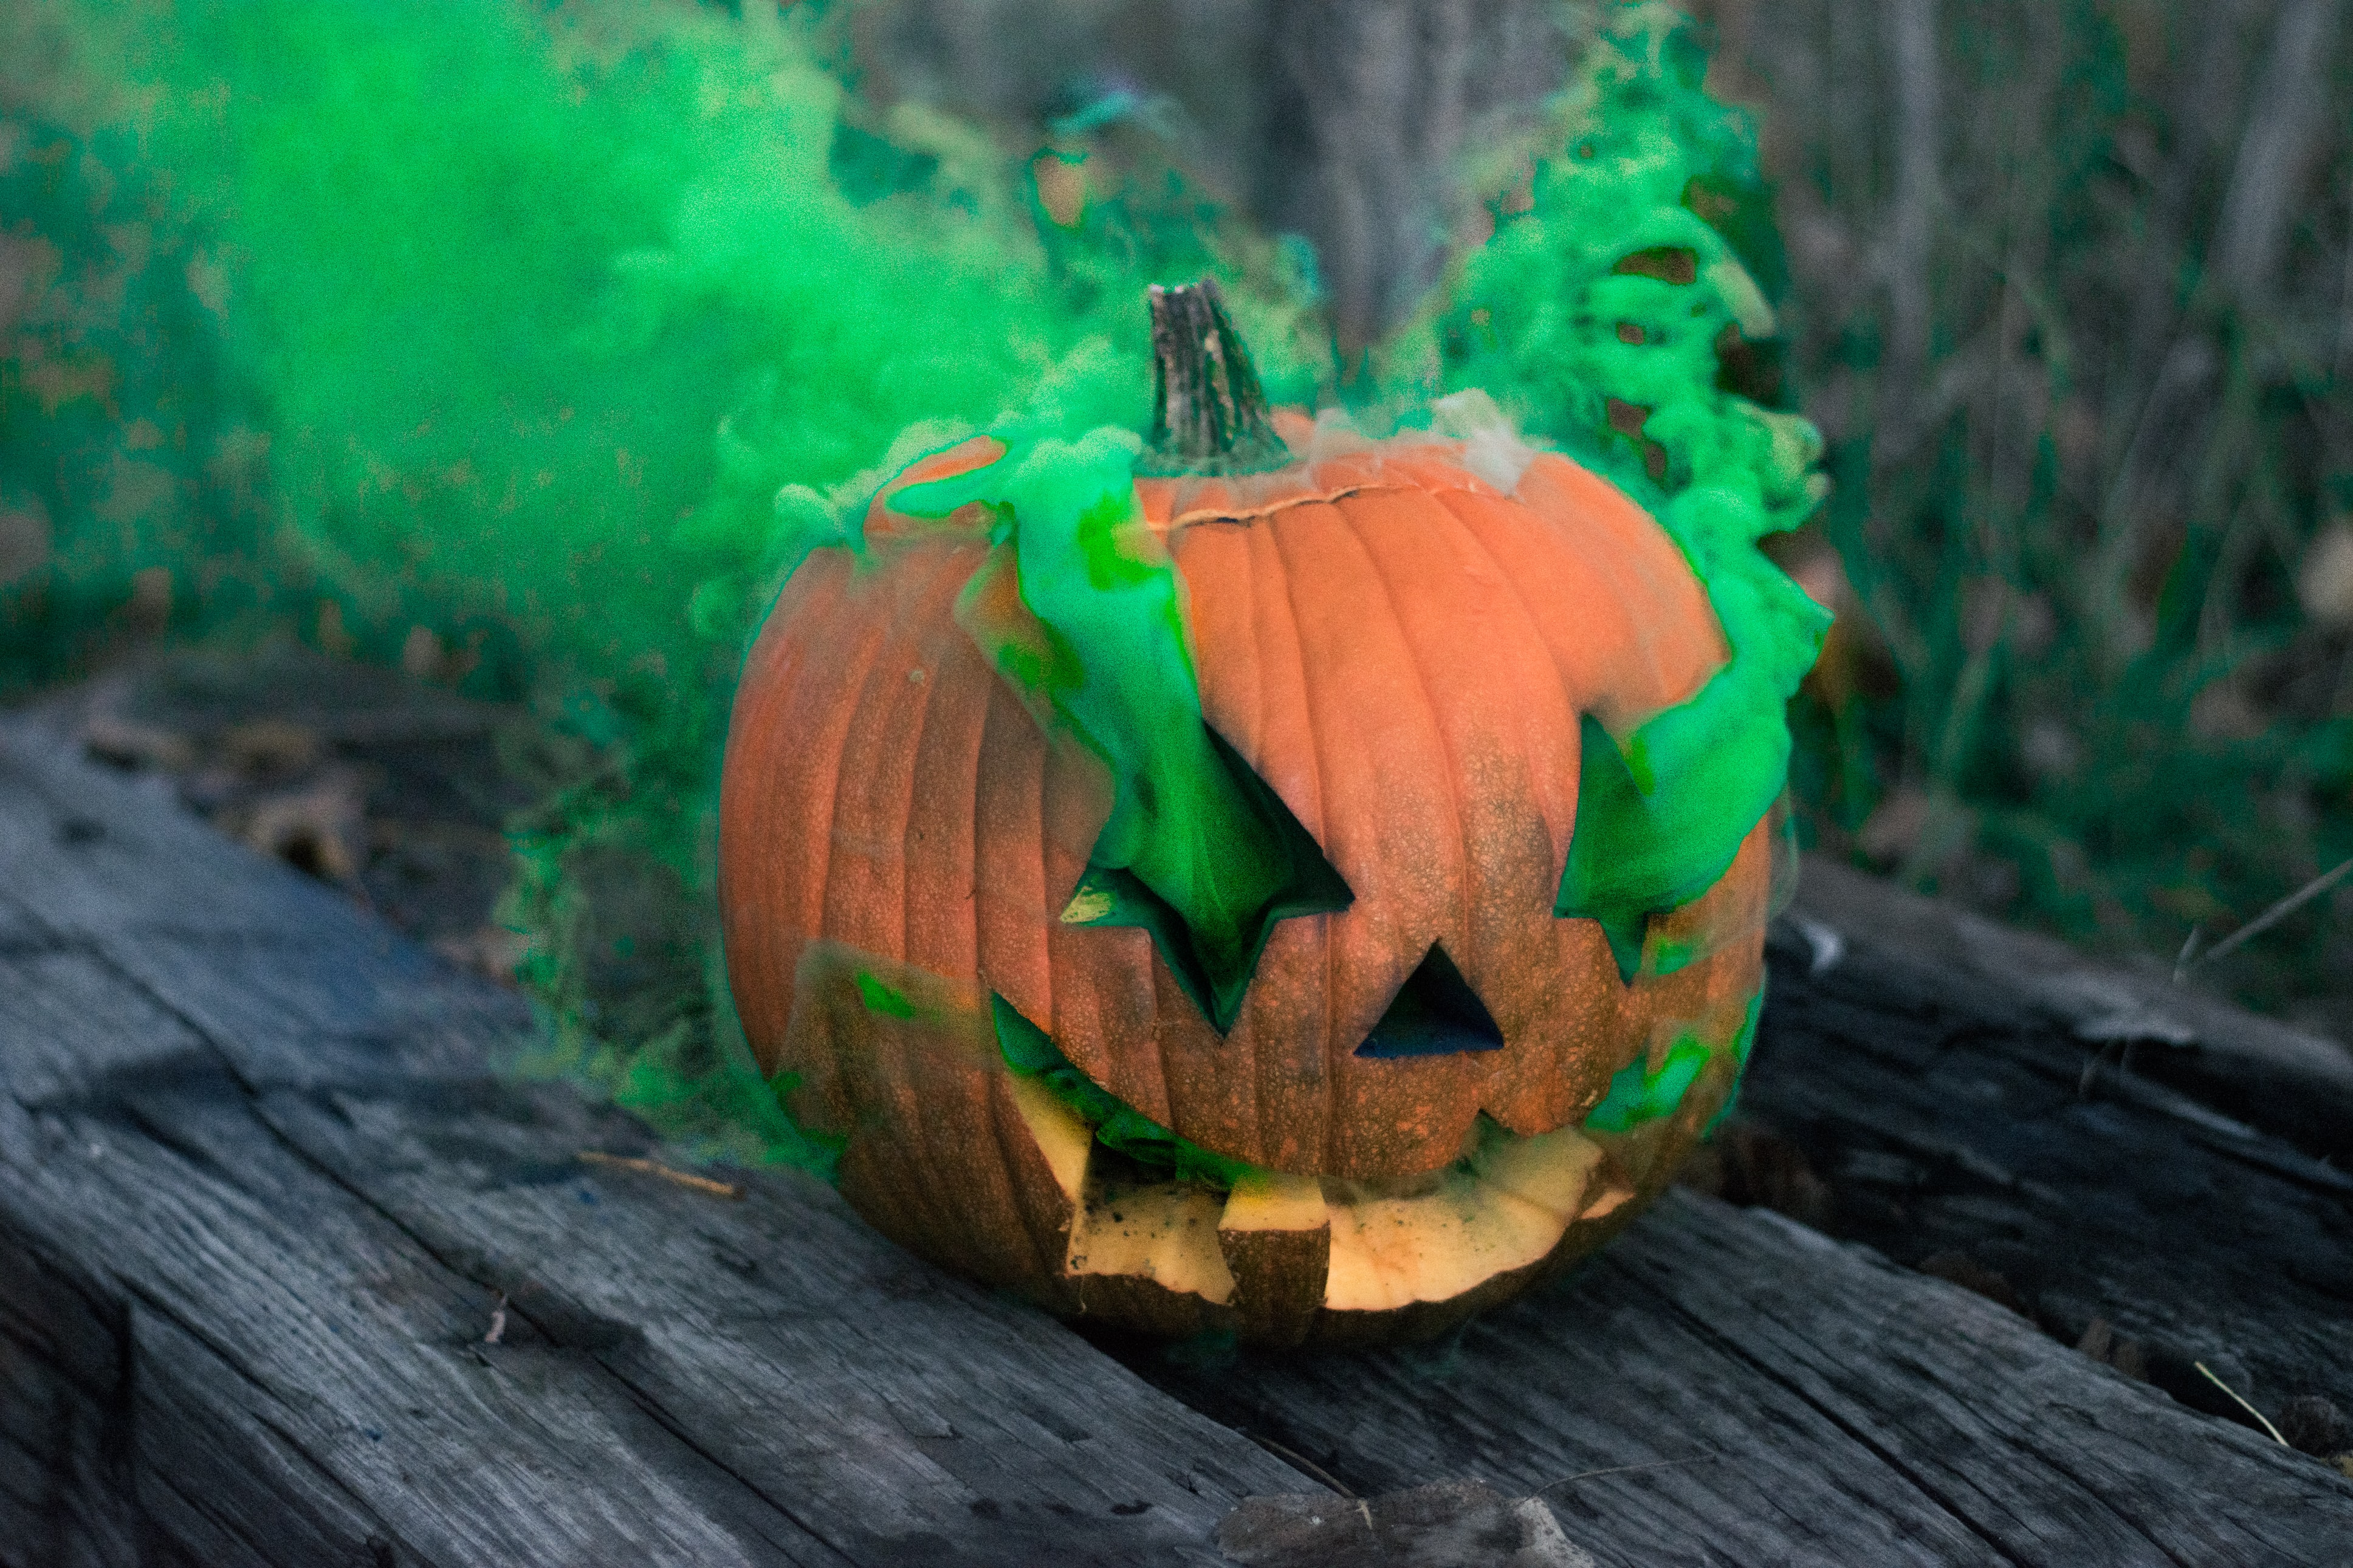 Jack-o'-lantern releasing green smoke on grey wooden board